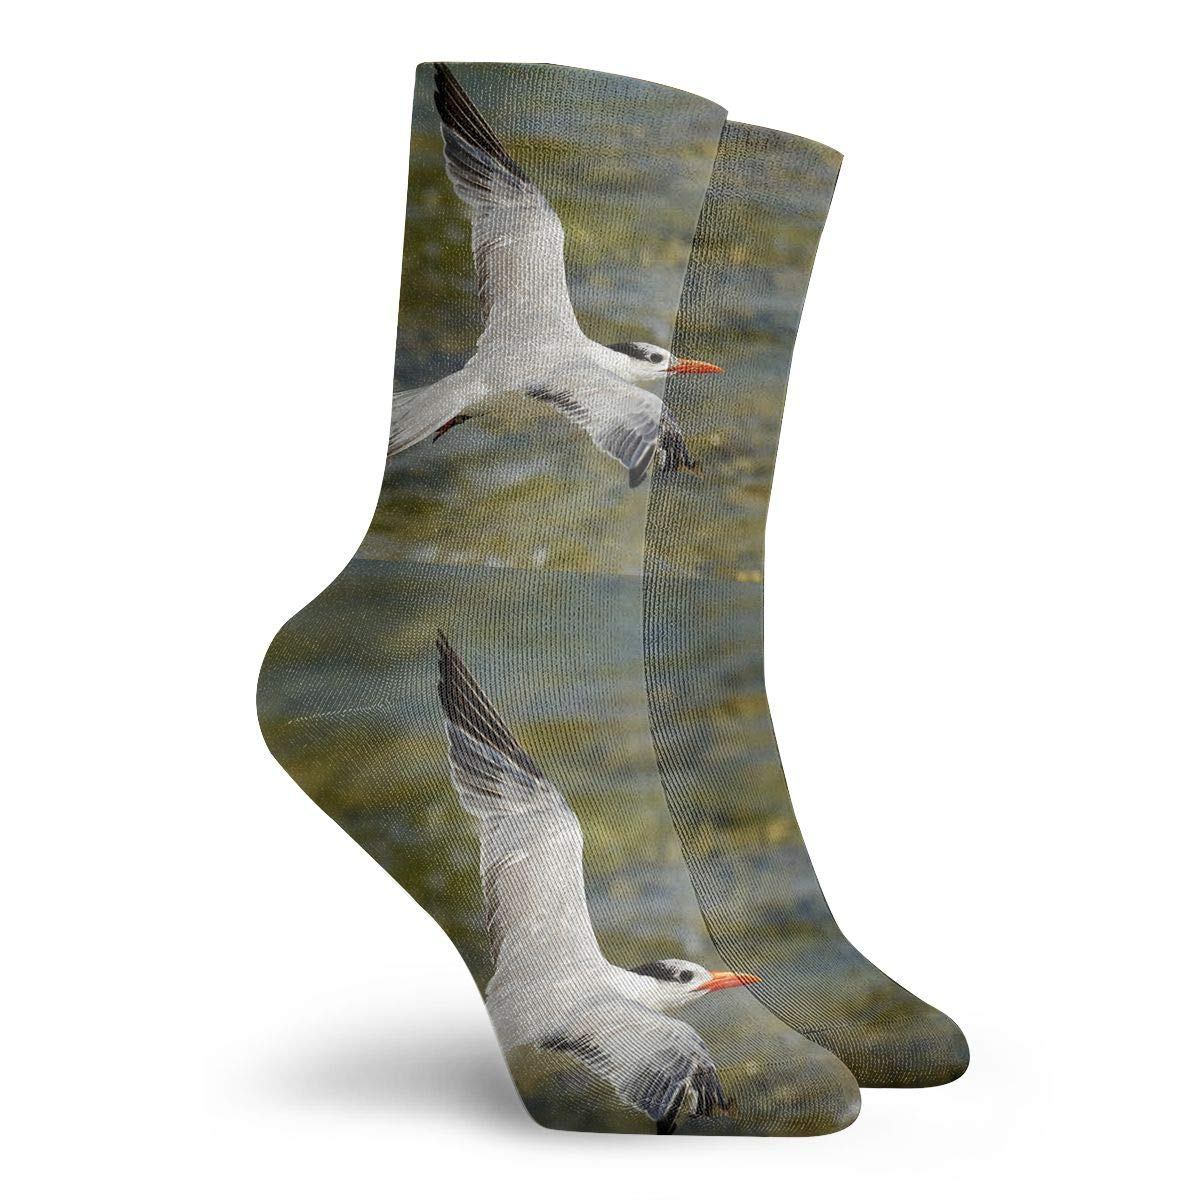 Baseball TAOMAP89 Caspian Tern Pattern Compression Ankle Socks for Women and Men Crazy Funny Socks Best for Flight Athletic